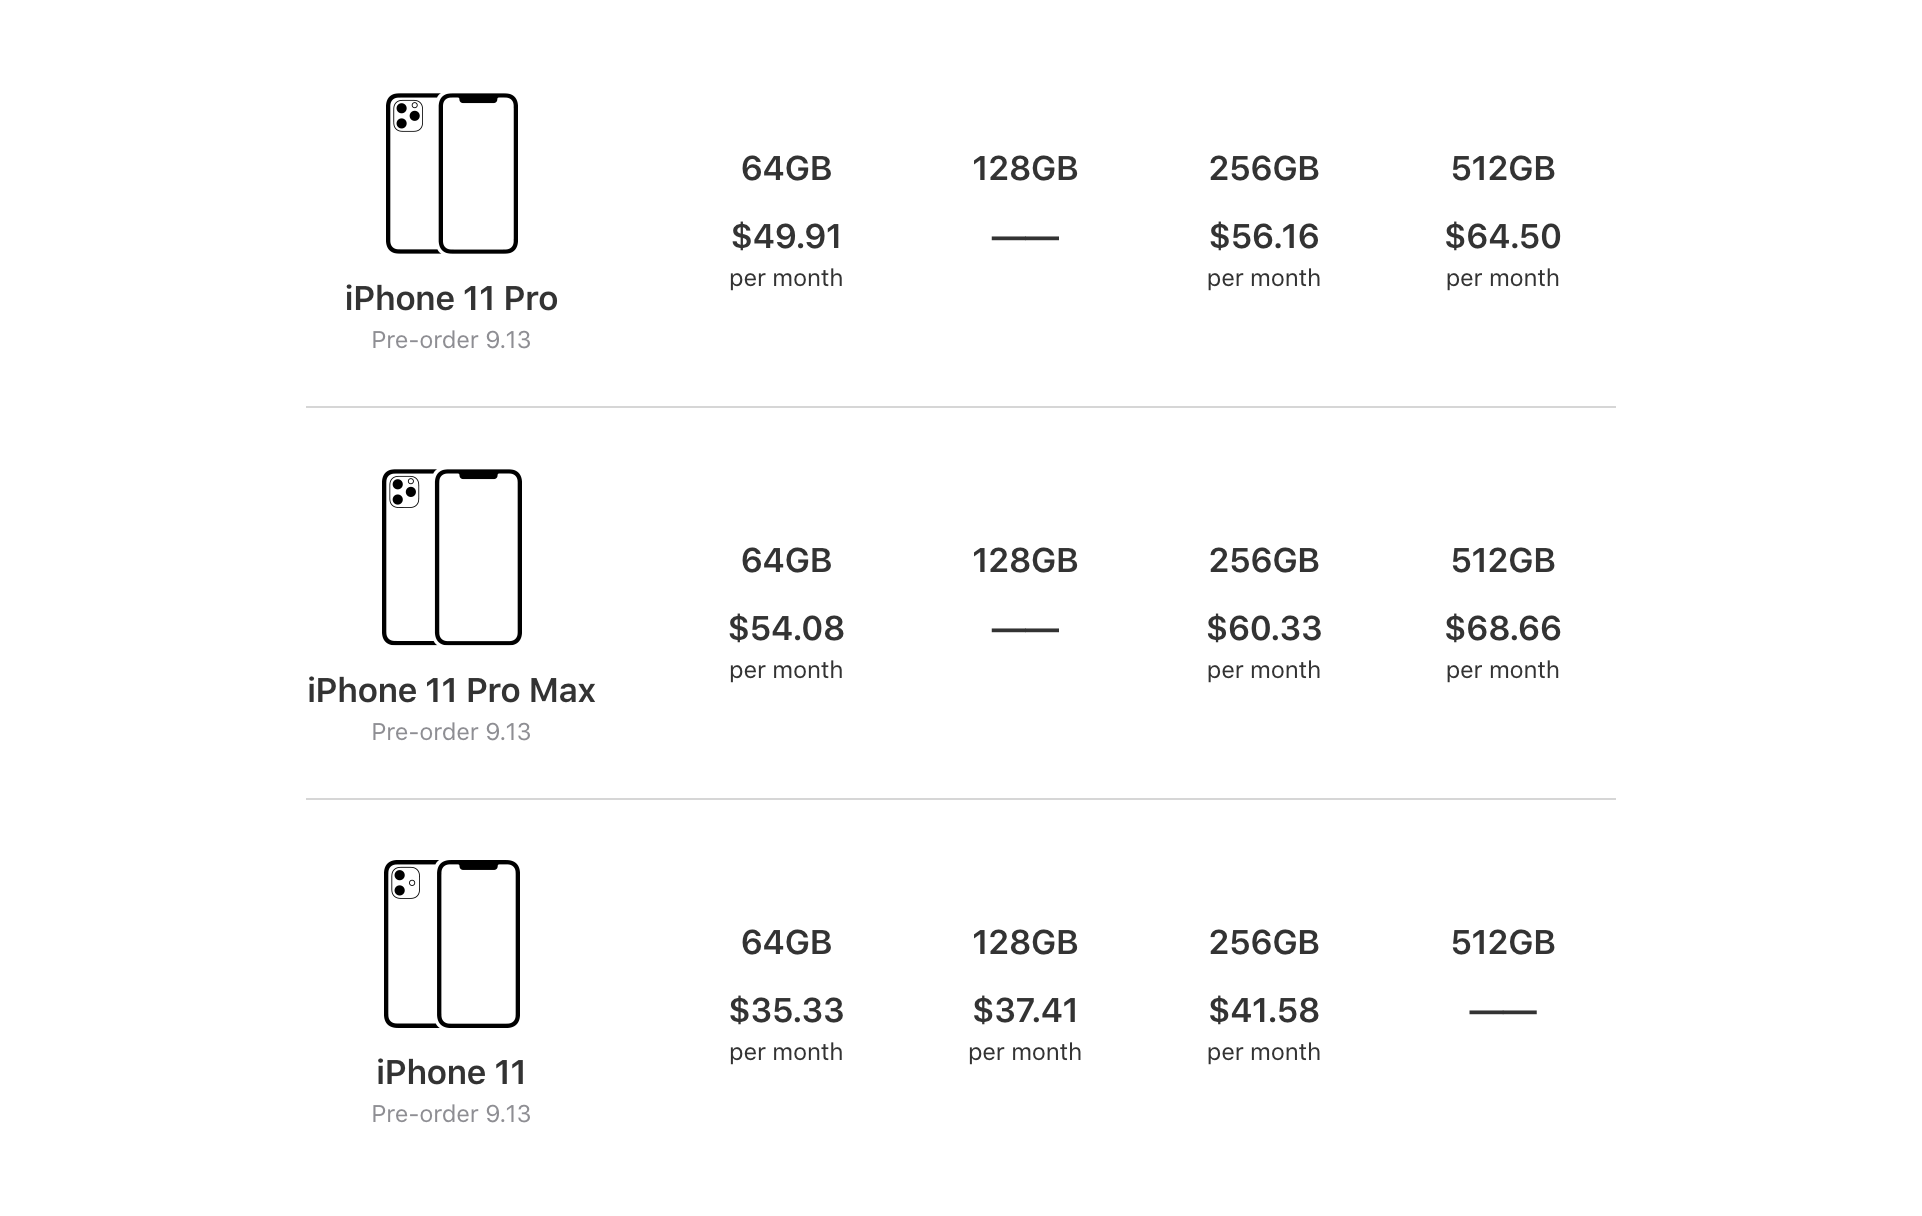 apple-update-program-prices-2019.png